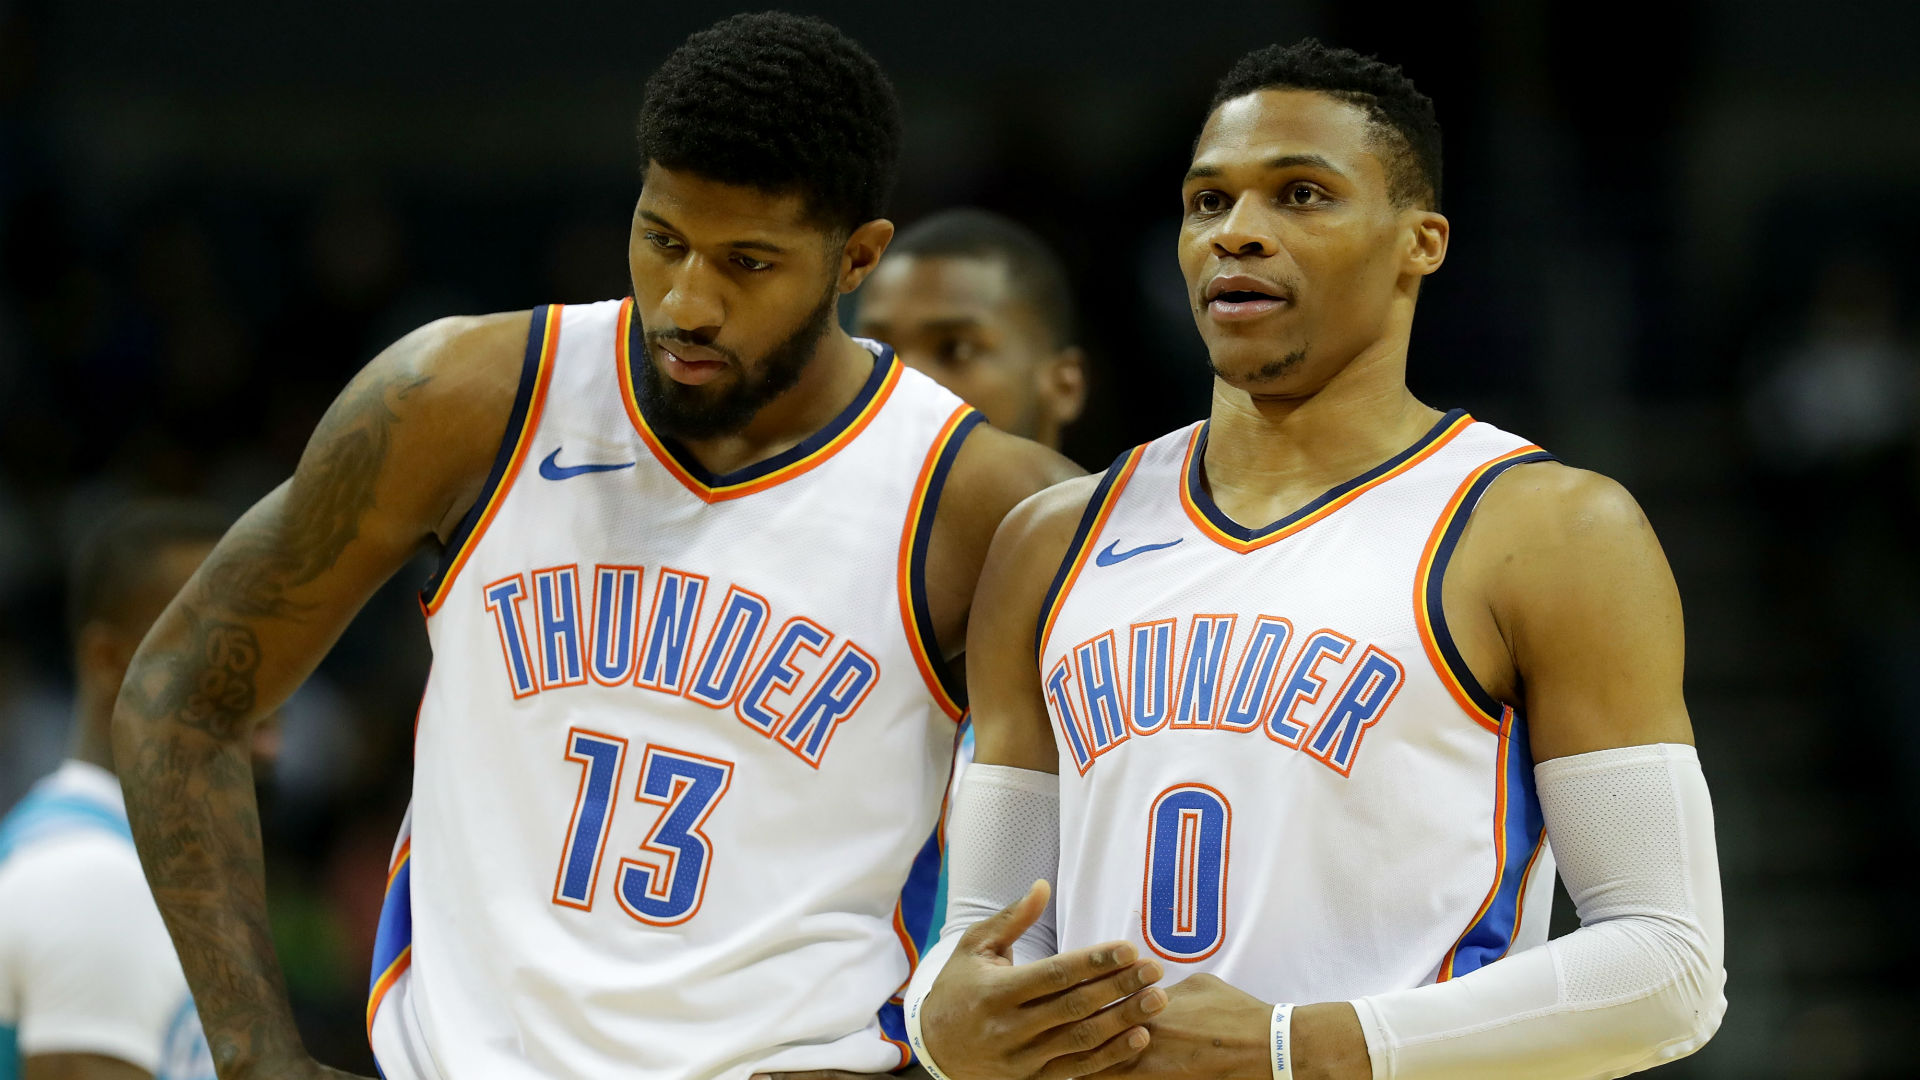 Russell Westbrook calls Paul George All-Star Game snub 'outrageous'